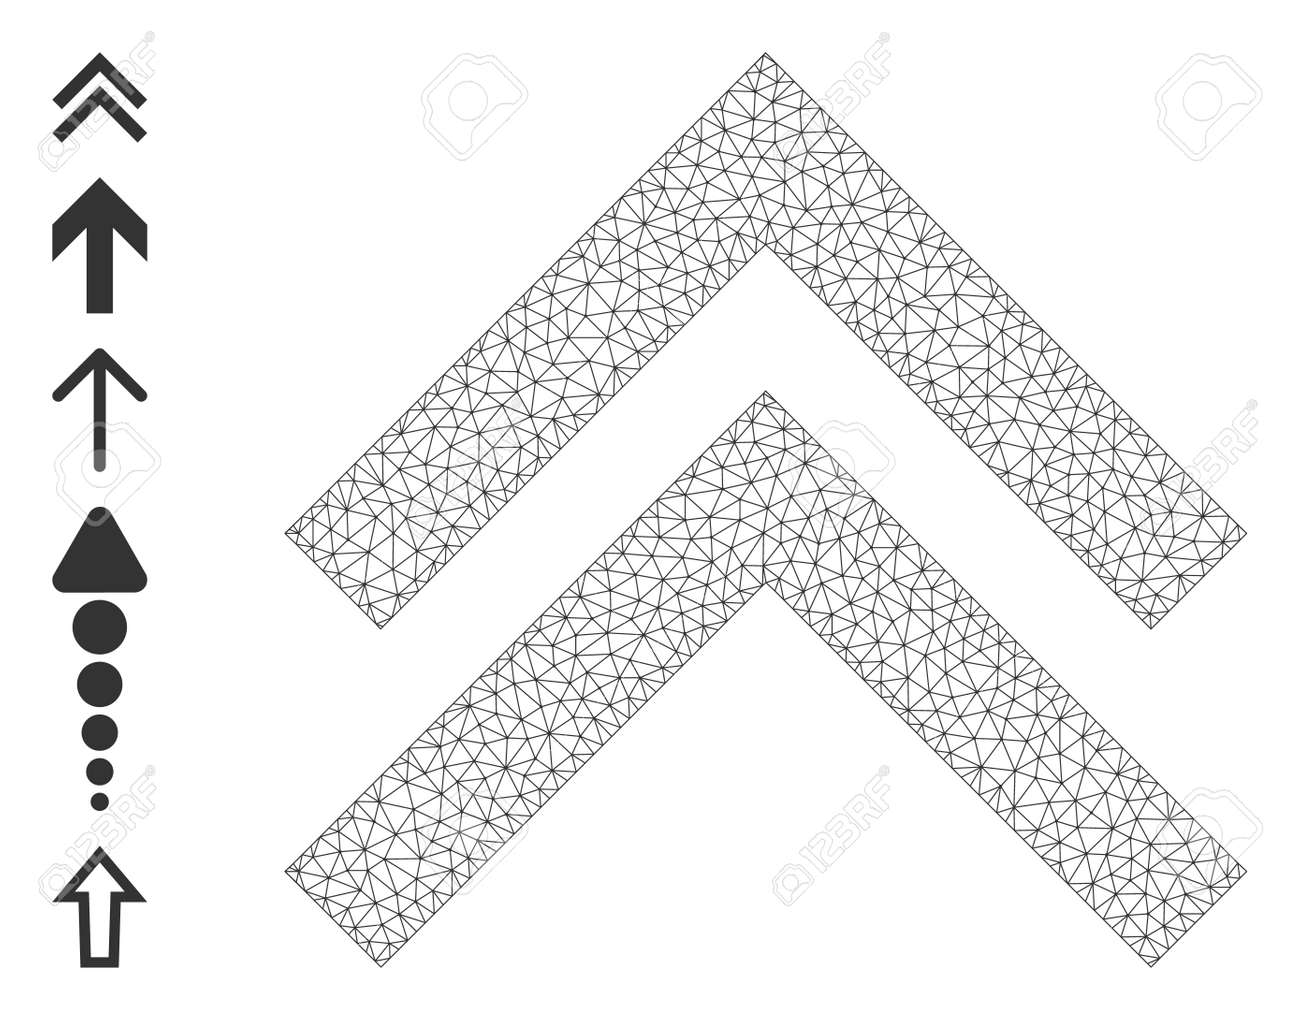 Mesh polygonal shift up icon with simple symbols created from shift up vector graphics. Frame mesh polygonal shift up. Linear frame 2D network in vector format. - 172394053